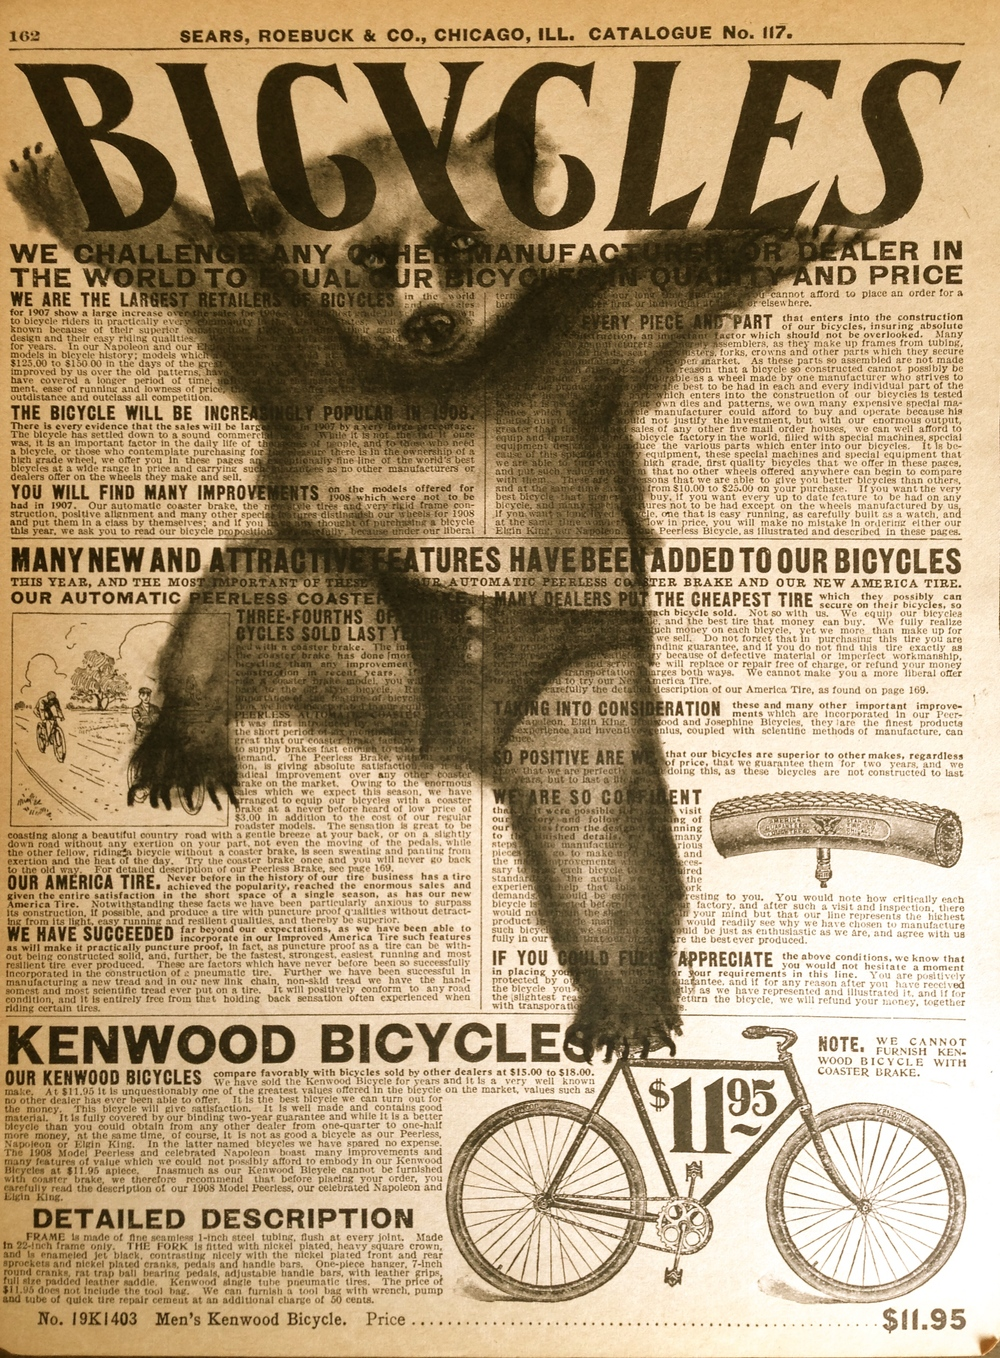 Bearcycles, 2015 Charcoal on antique catalog